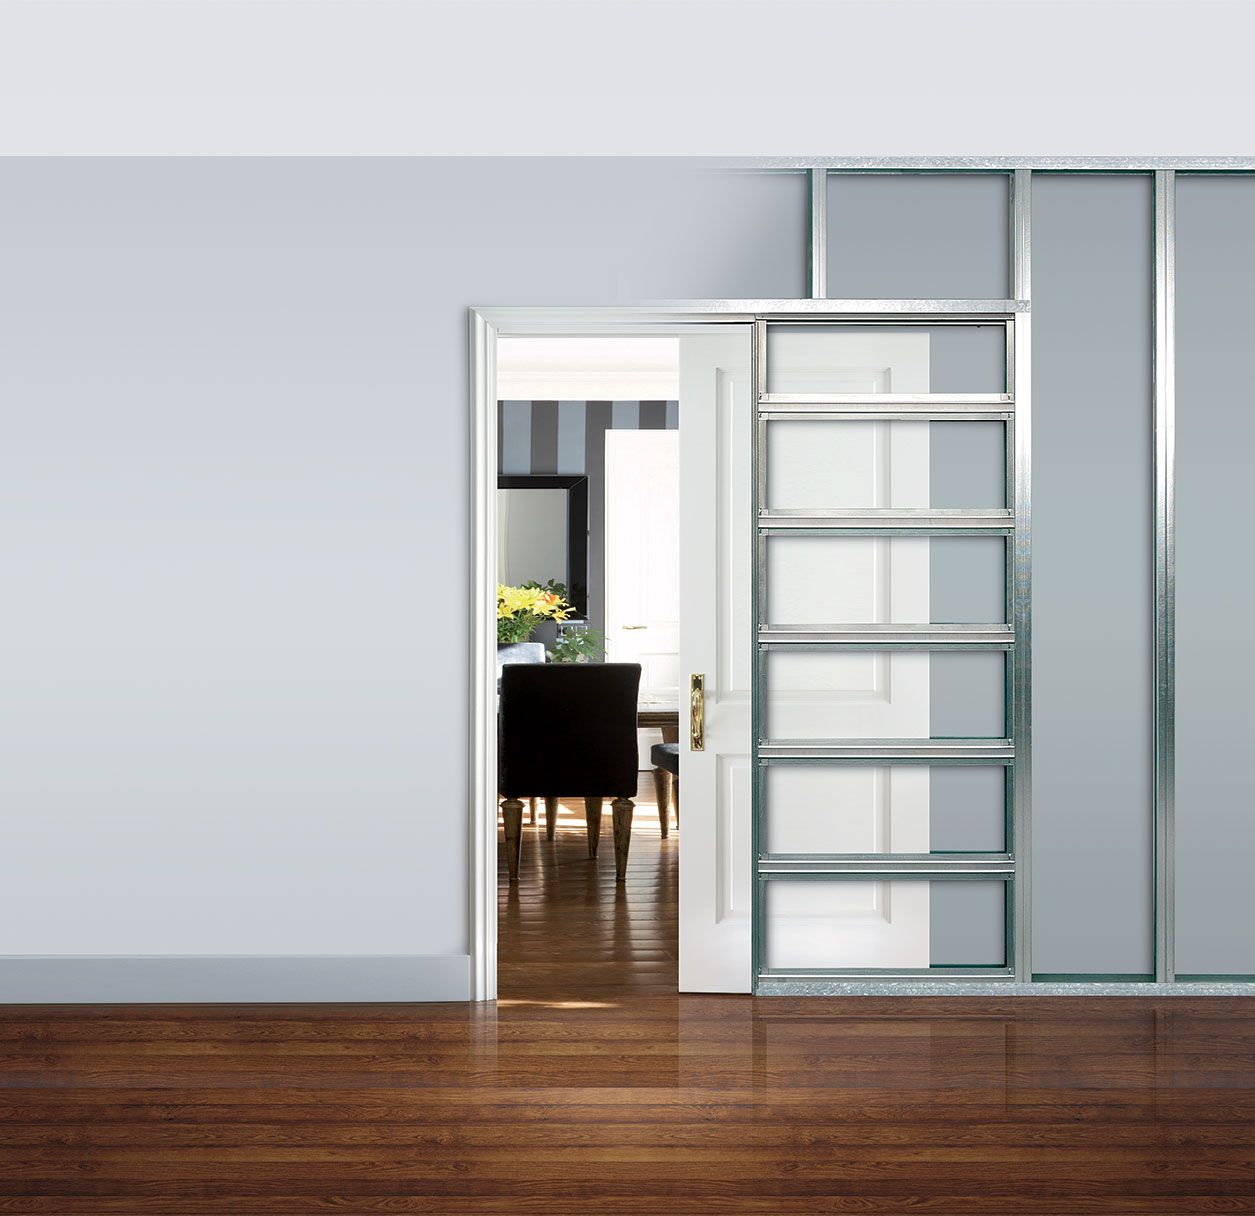 What Are Pocket Doors An Eclisse Sliding Pocket Door Is A System Of Building A Counter Frame Which Is Then Int Pocket Doors Sliding Pocket Doors Frames On Wall